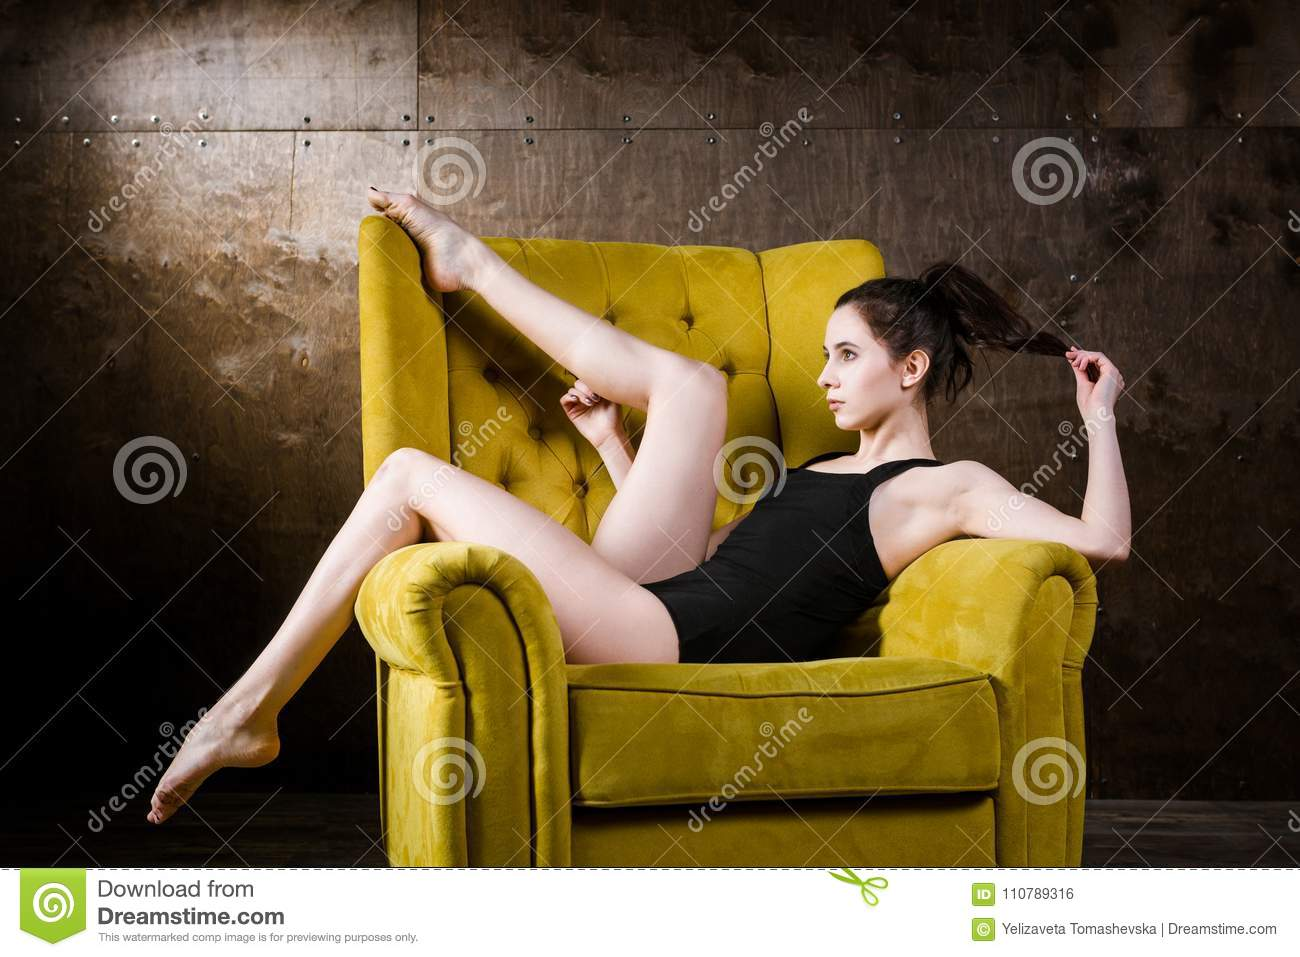 d592cb2d5 A young beautiful, Caucasian woman with thin figure and long bare legs,  barefoot posing